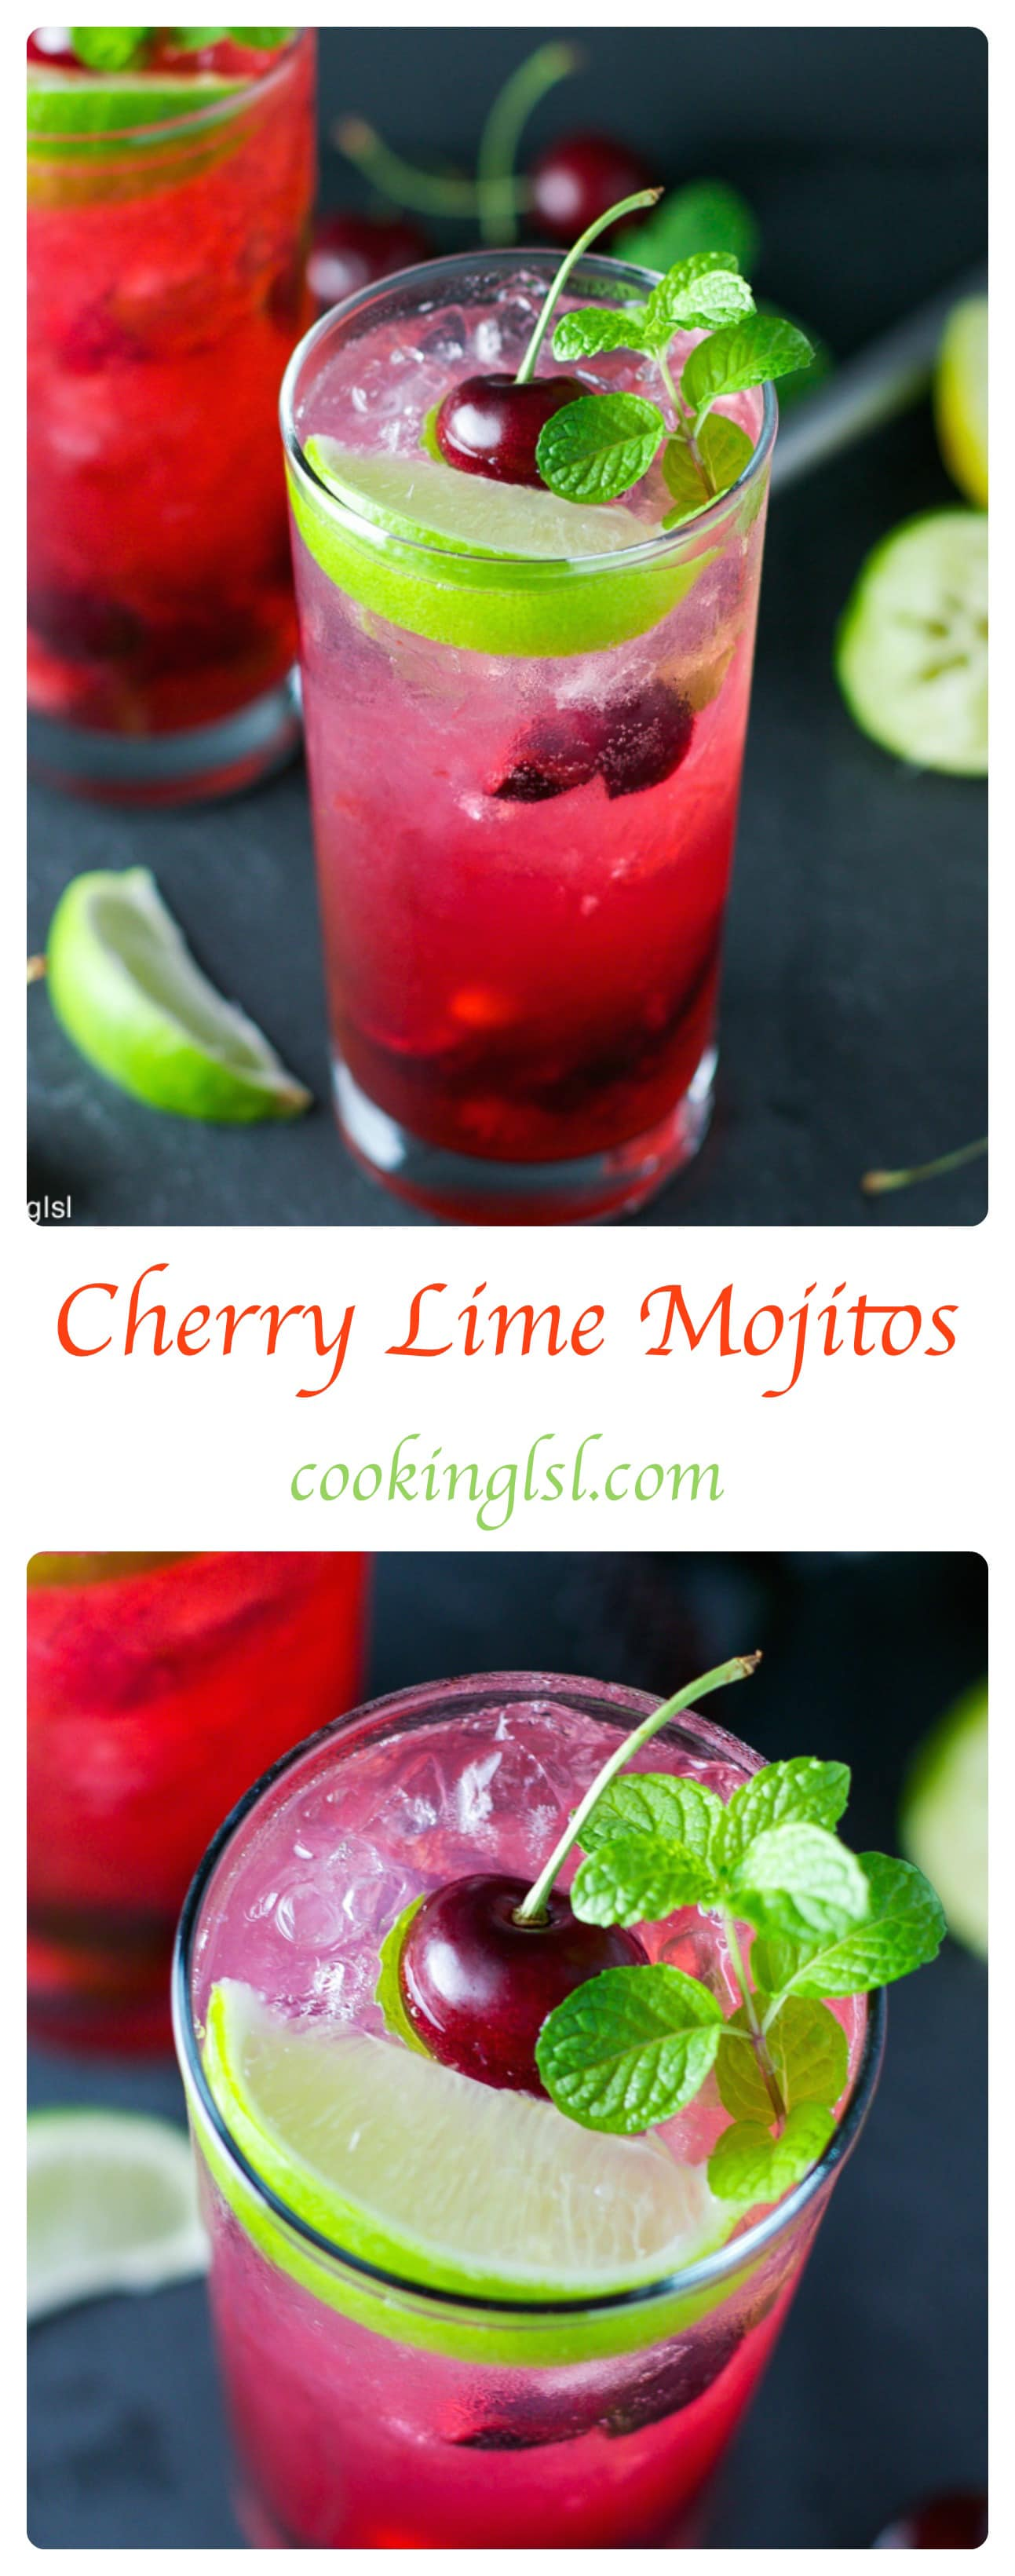 Cherry Lime Mojito - very simple to make, sweet and refreshing.